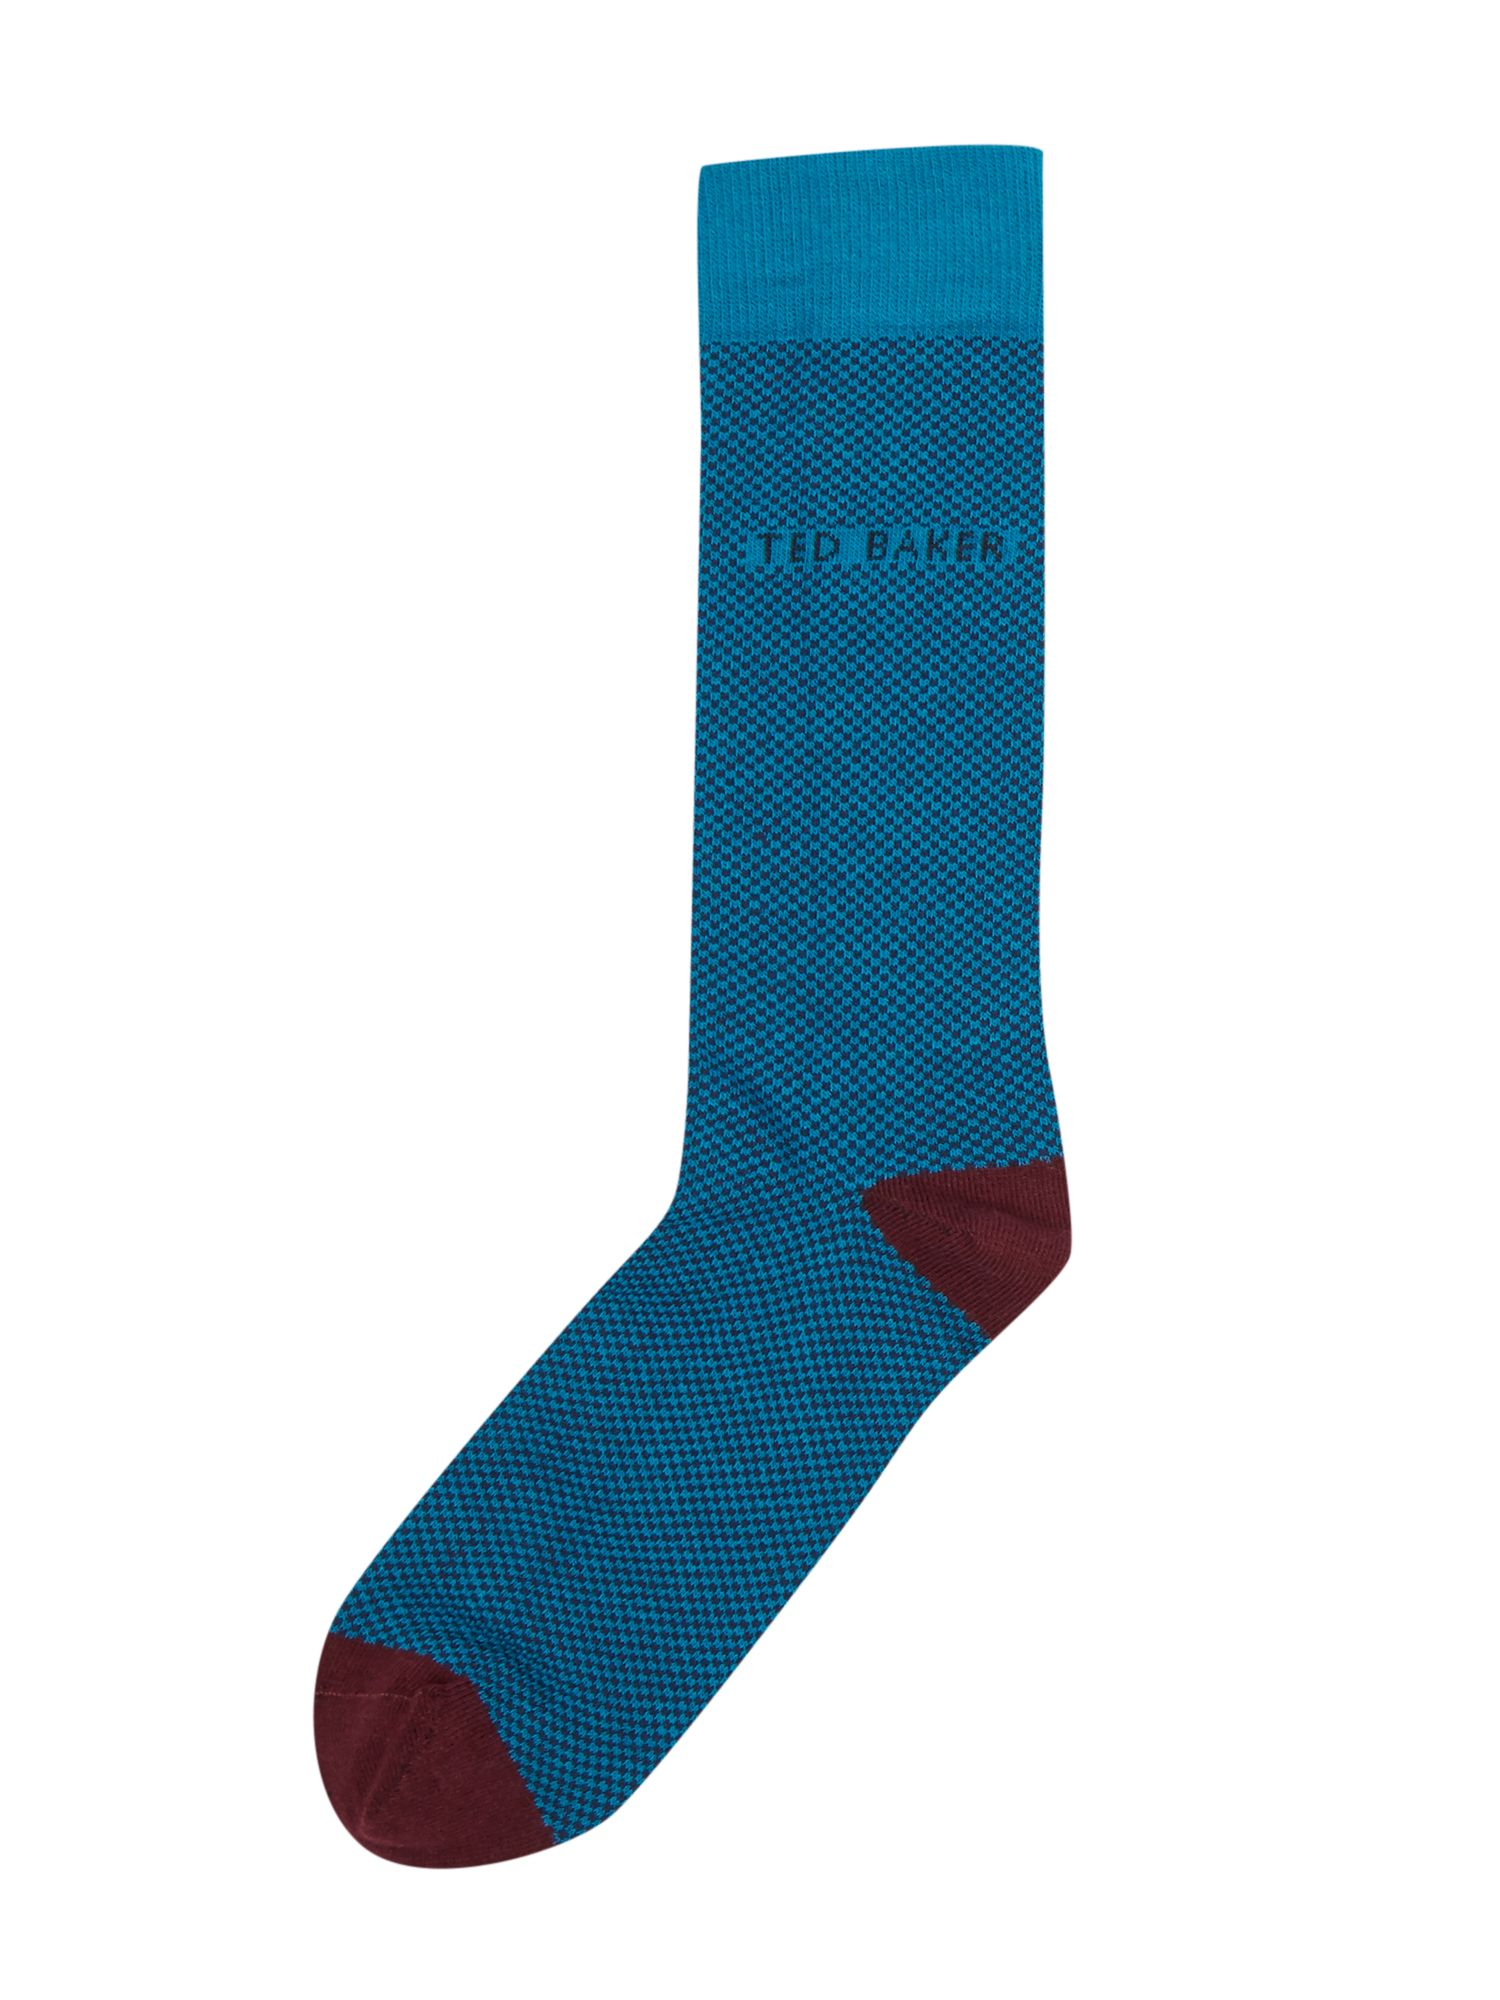 Mens oxford sock